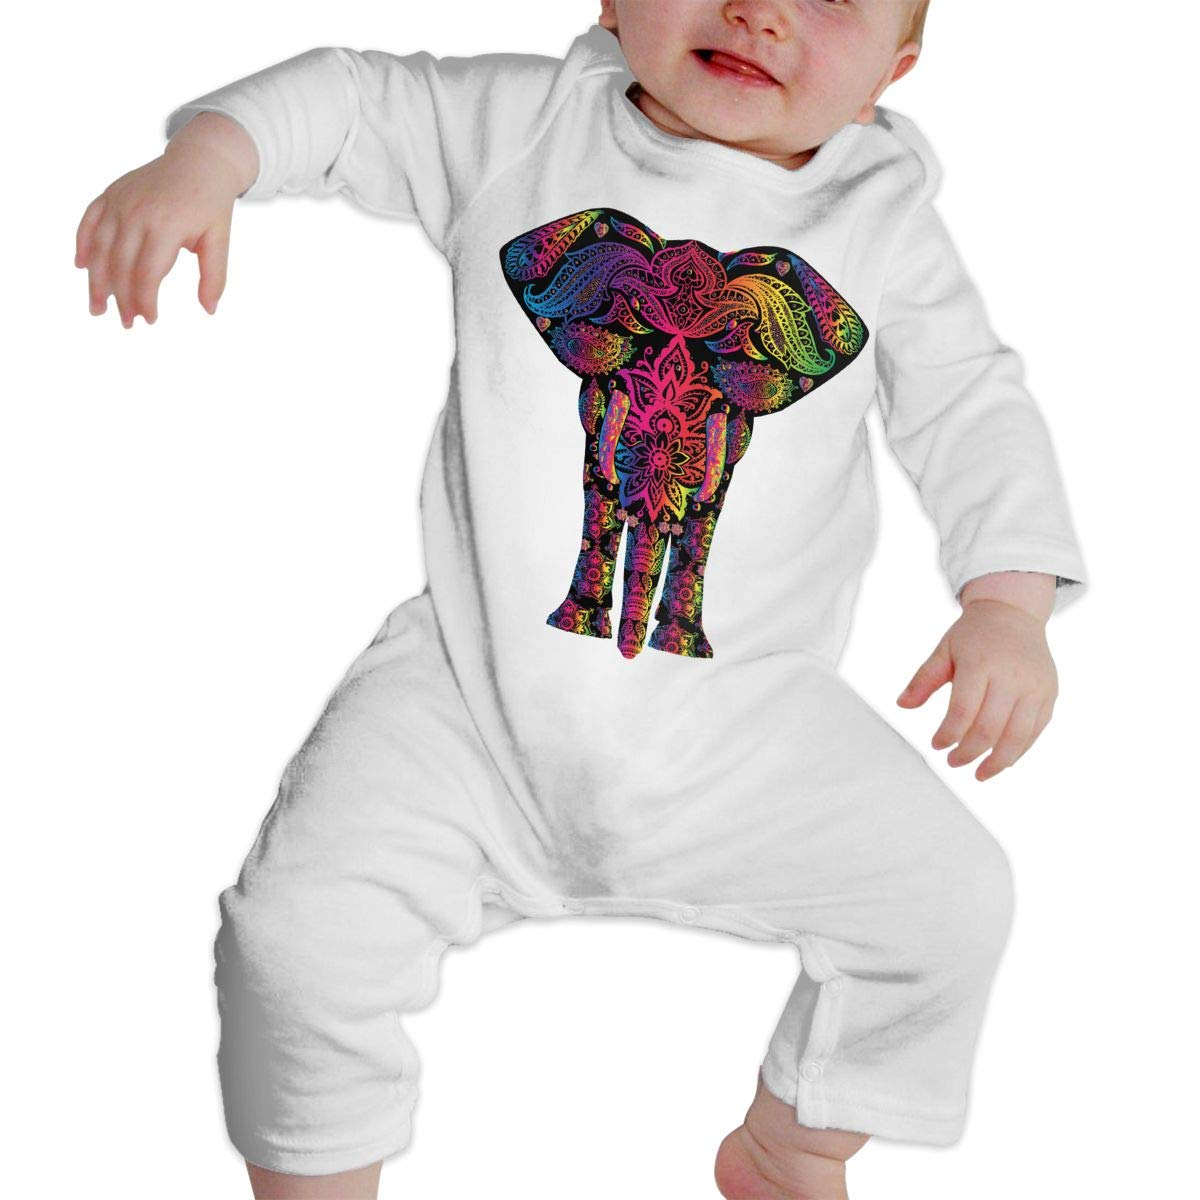 Infant Baby Boys Girls Cotton Long Sleeve Rainbow Floral Pattern Elephant Climb Romper One-Piece Romper Clothes